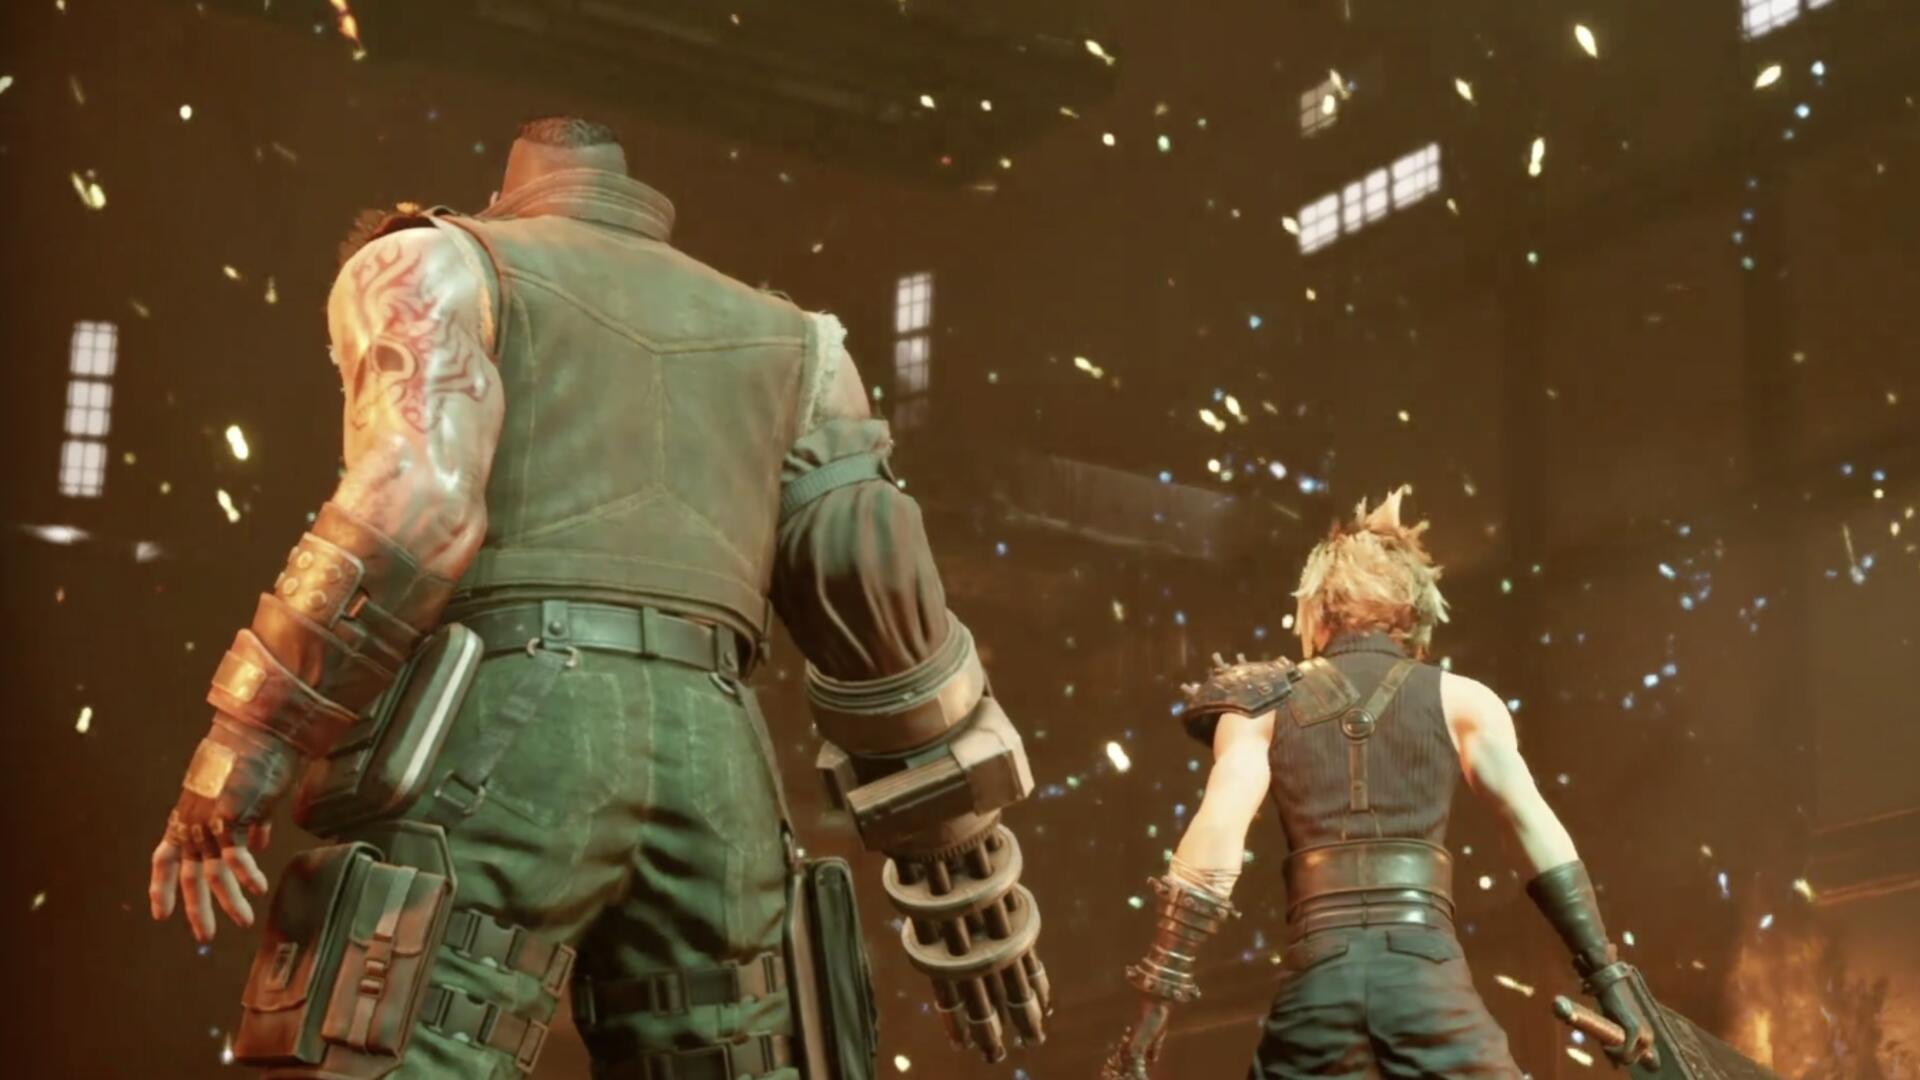 Final Fantasy 7 Remake Part 1 Will be Set Solely in Midgar, Second Episode Being Outlined Now